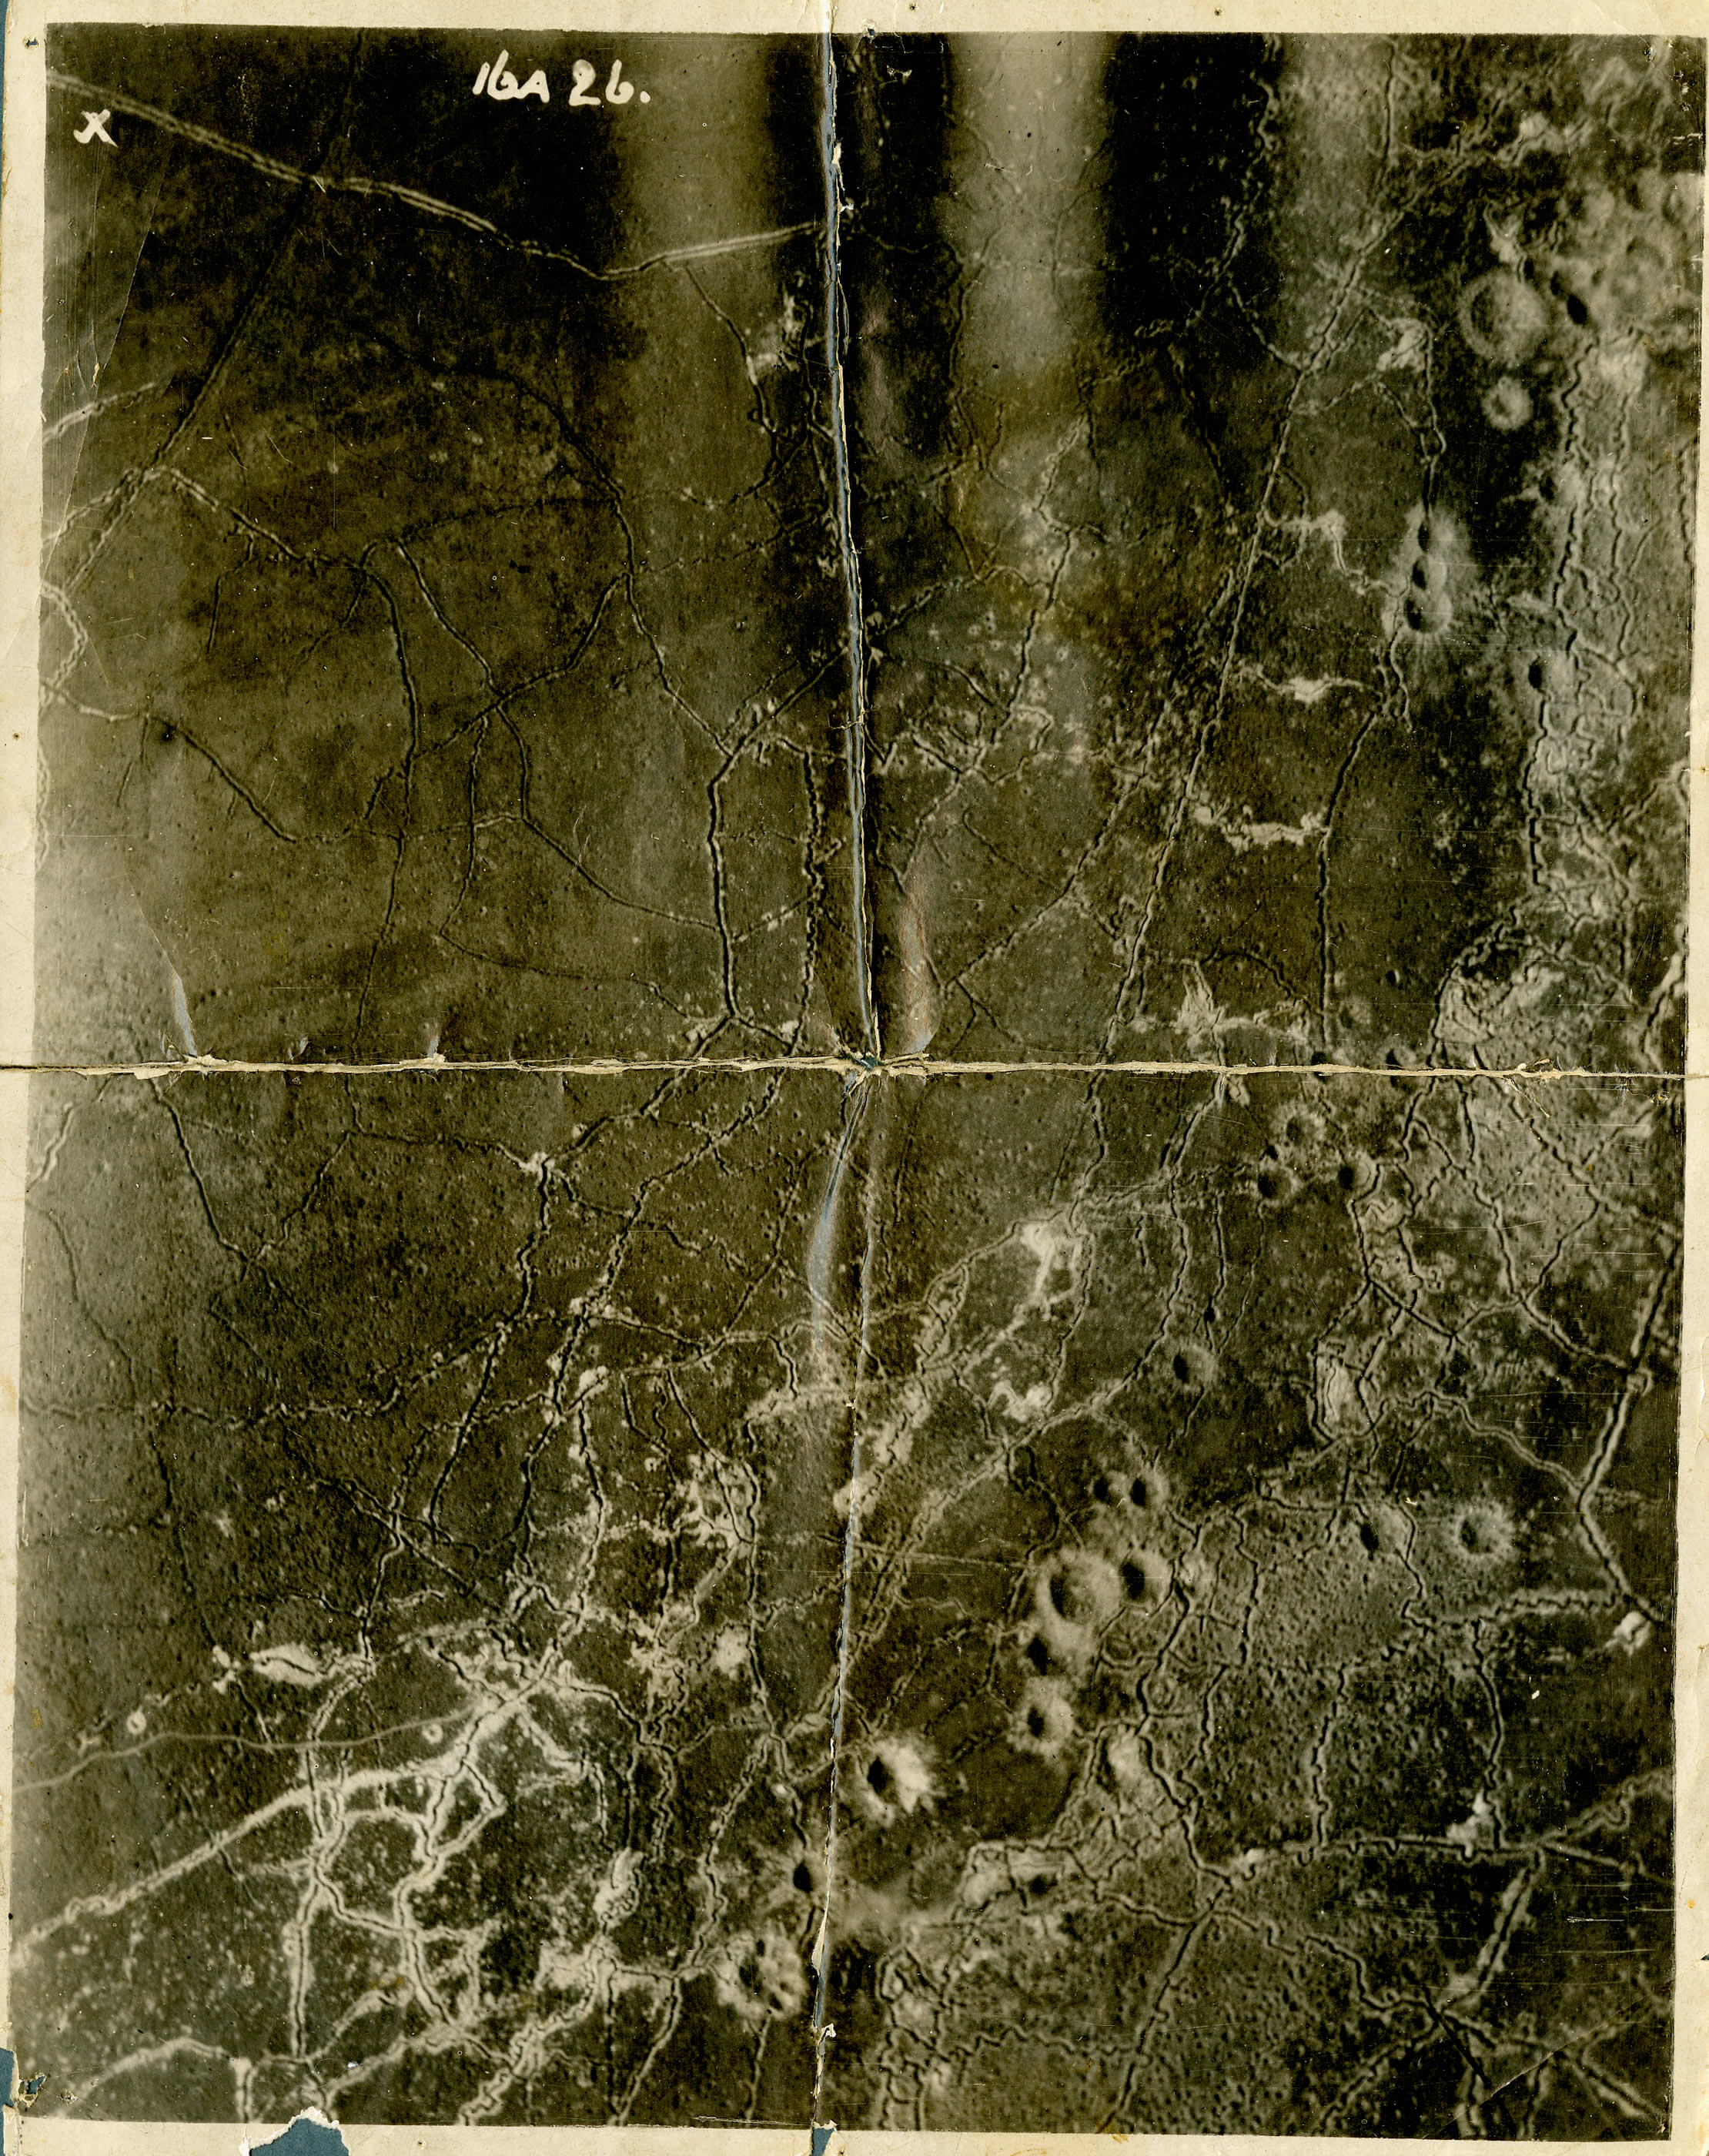 This aerial photograph illustrates the major trench lines around an unknown sector on Vimy Ridge. The large craters, some 10 to 15 metres deep, were made from mine explosions set off by Canadian engineers prior to and during the assault of April 9, 1917. Mines could create great confusion and blow huge gaps in an enemy's defences, but they were also significant obstacles for advancing troops. (george metcalf archival collection, cwm   19740387-060  )